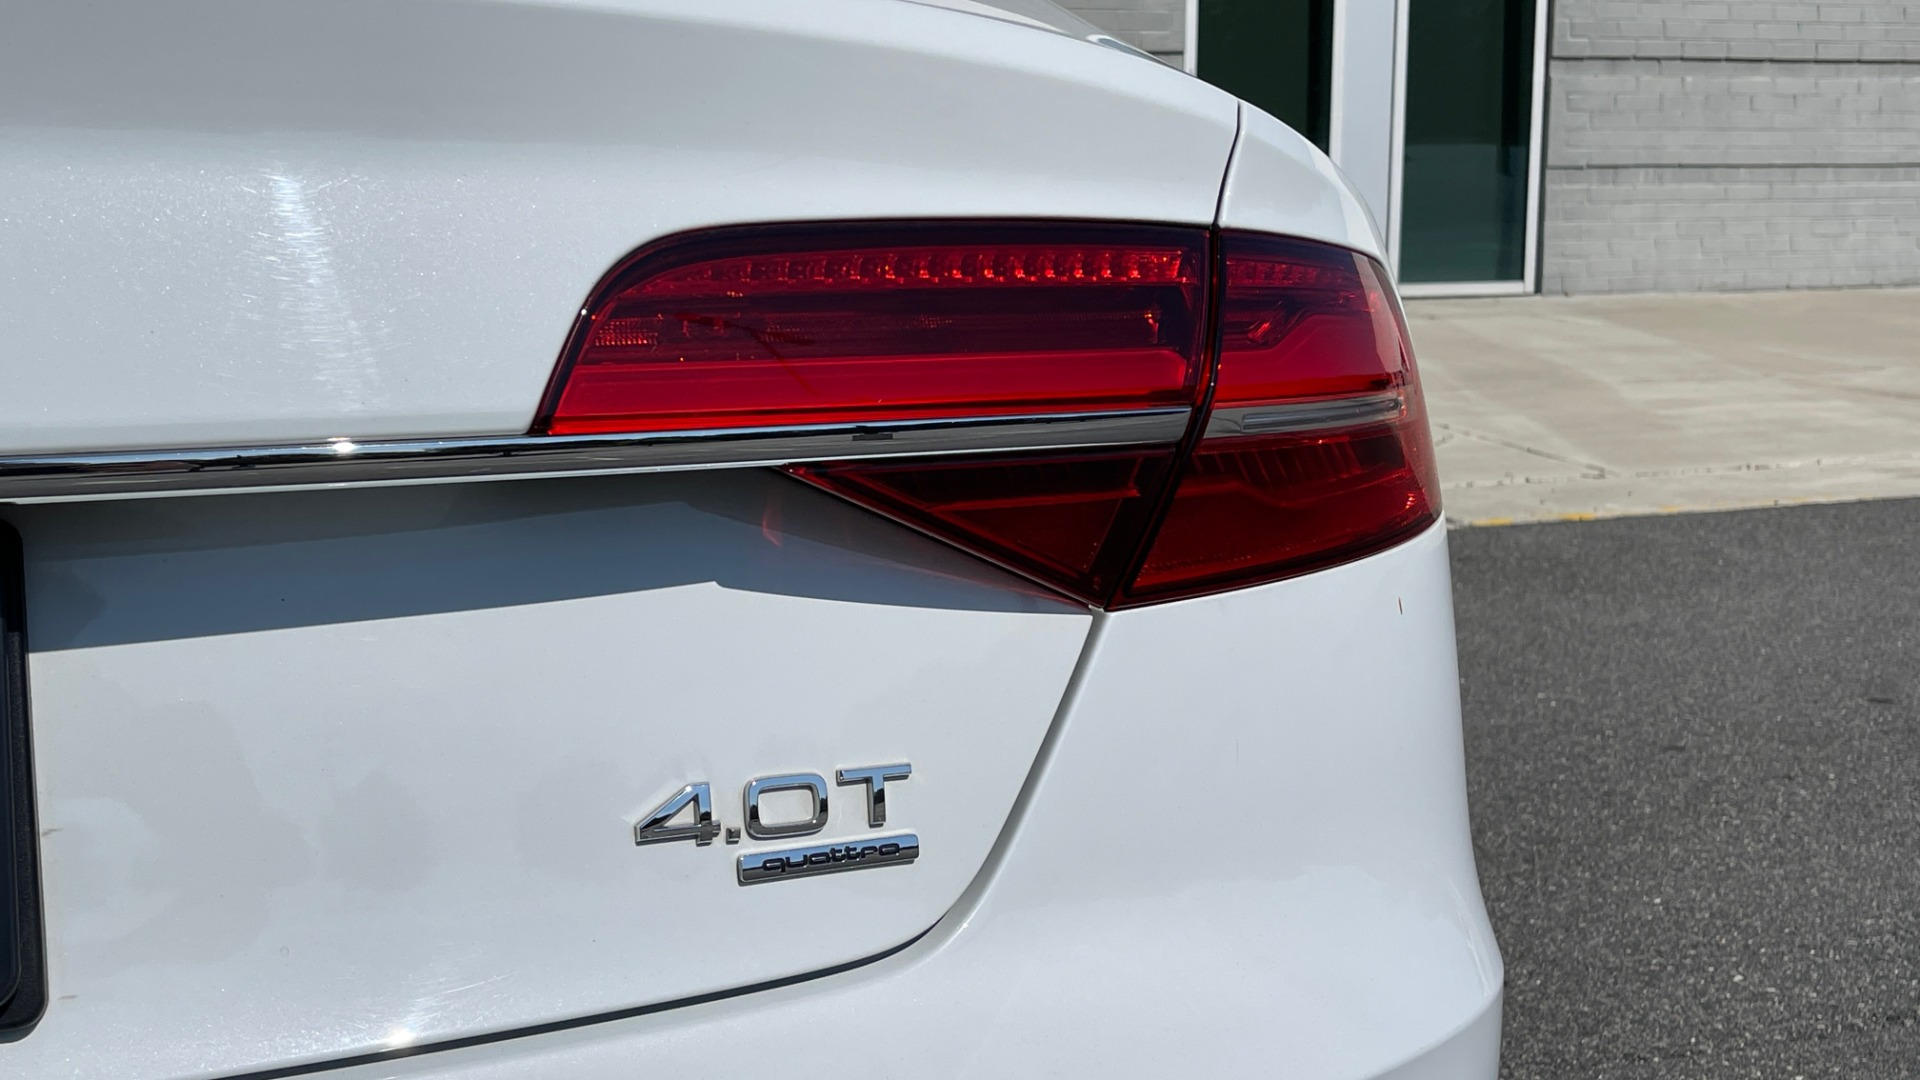 Used 2018 Audi A8 L SPORT 4.0T / EXECUTIVE PKG / NAV / BOSE / SUNROOF / REARVIEW for sale Sold at Formula Imports in Charlotte NC 28227 28